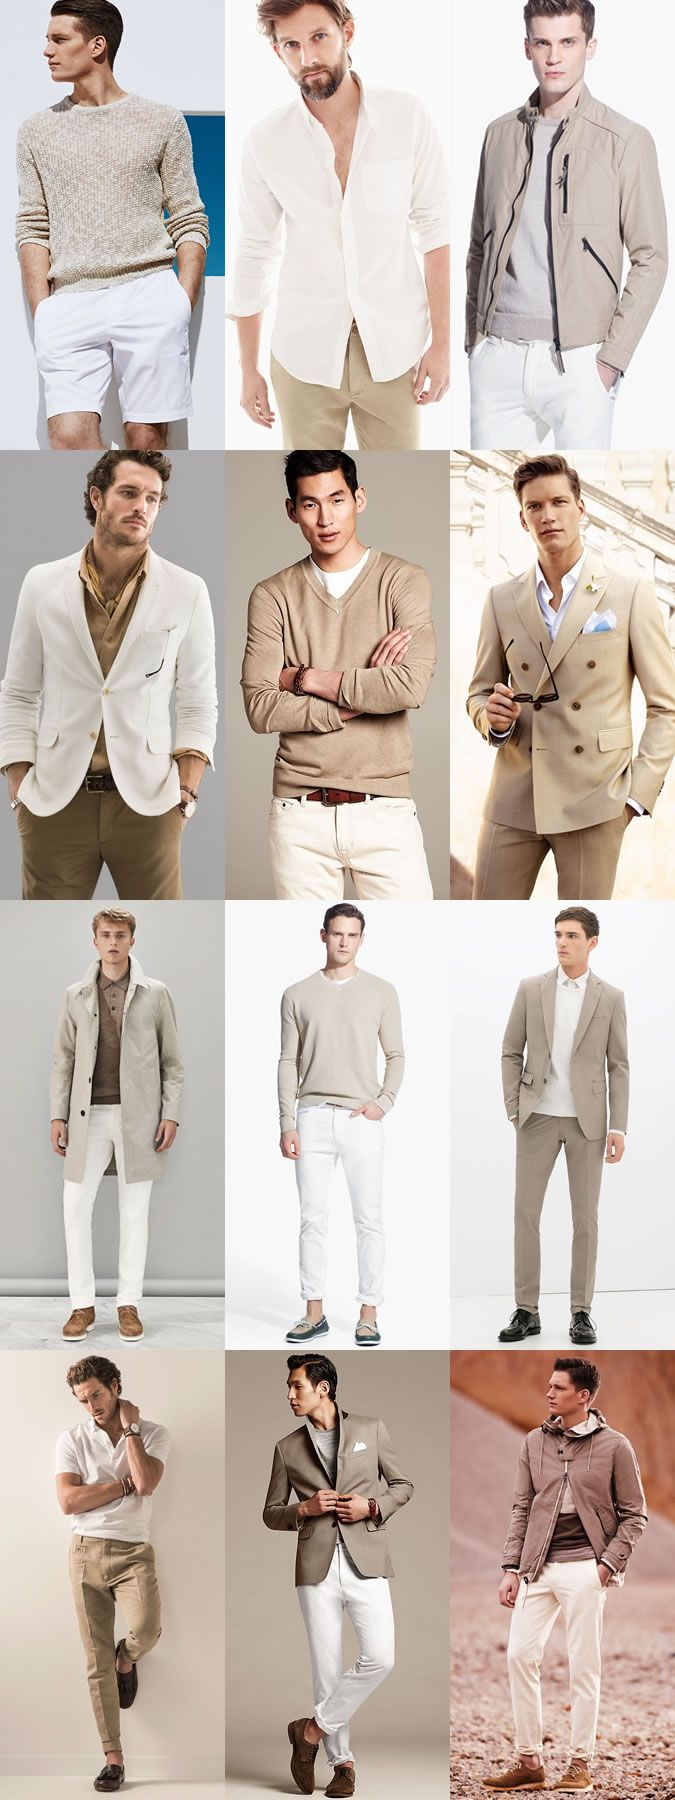 Men's Khaki and White Combinations - Spring/Summer Outfit Inspiration Lookbook #Menswear #Style #GuysGuide